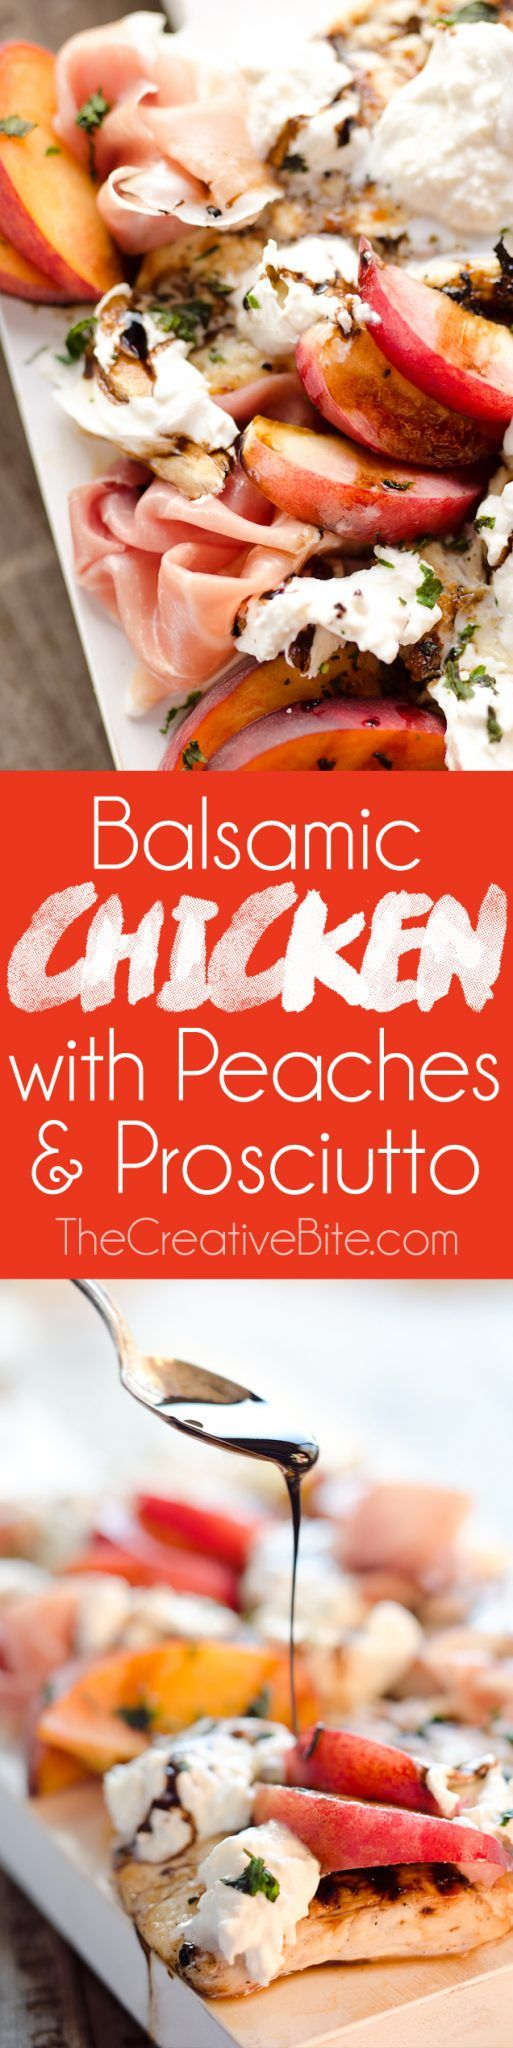 Balsamic Chicken with Peaches & Prosciutto is a deliciously simple and healthy dinner made on the grill in just 10 minutes! Grilled chicken is topped with fresh peaches and burrata cheese and finished off with a balsamic reduction and basil for a low carb recipe that will make everyone's mouth water! #Healthy #Grill #Recipe #LowCarb